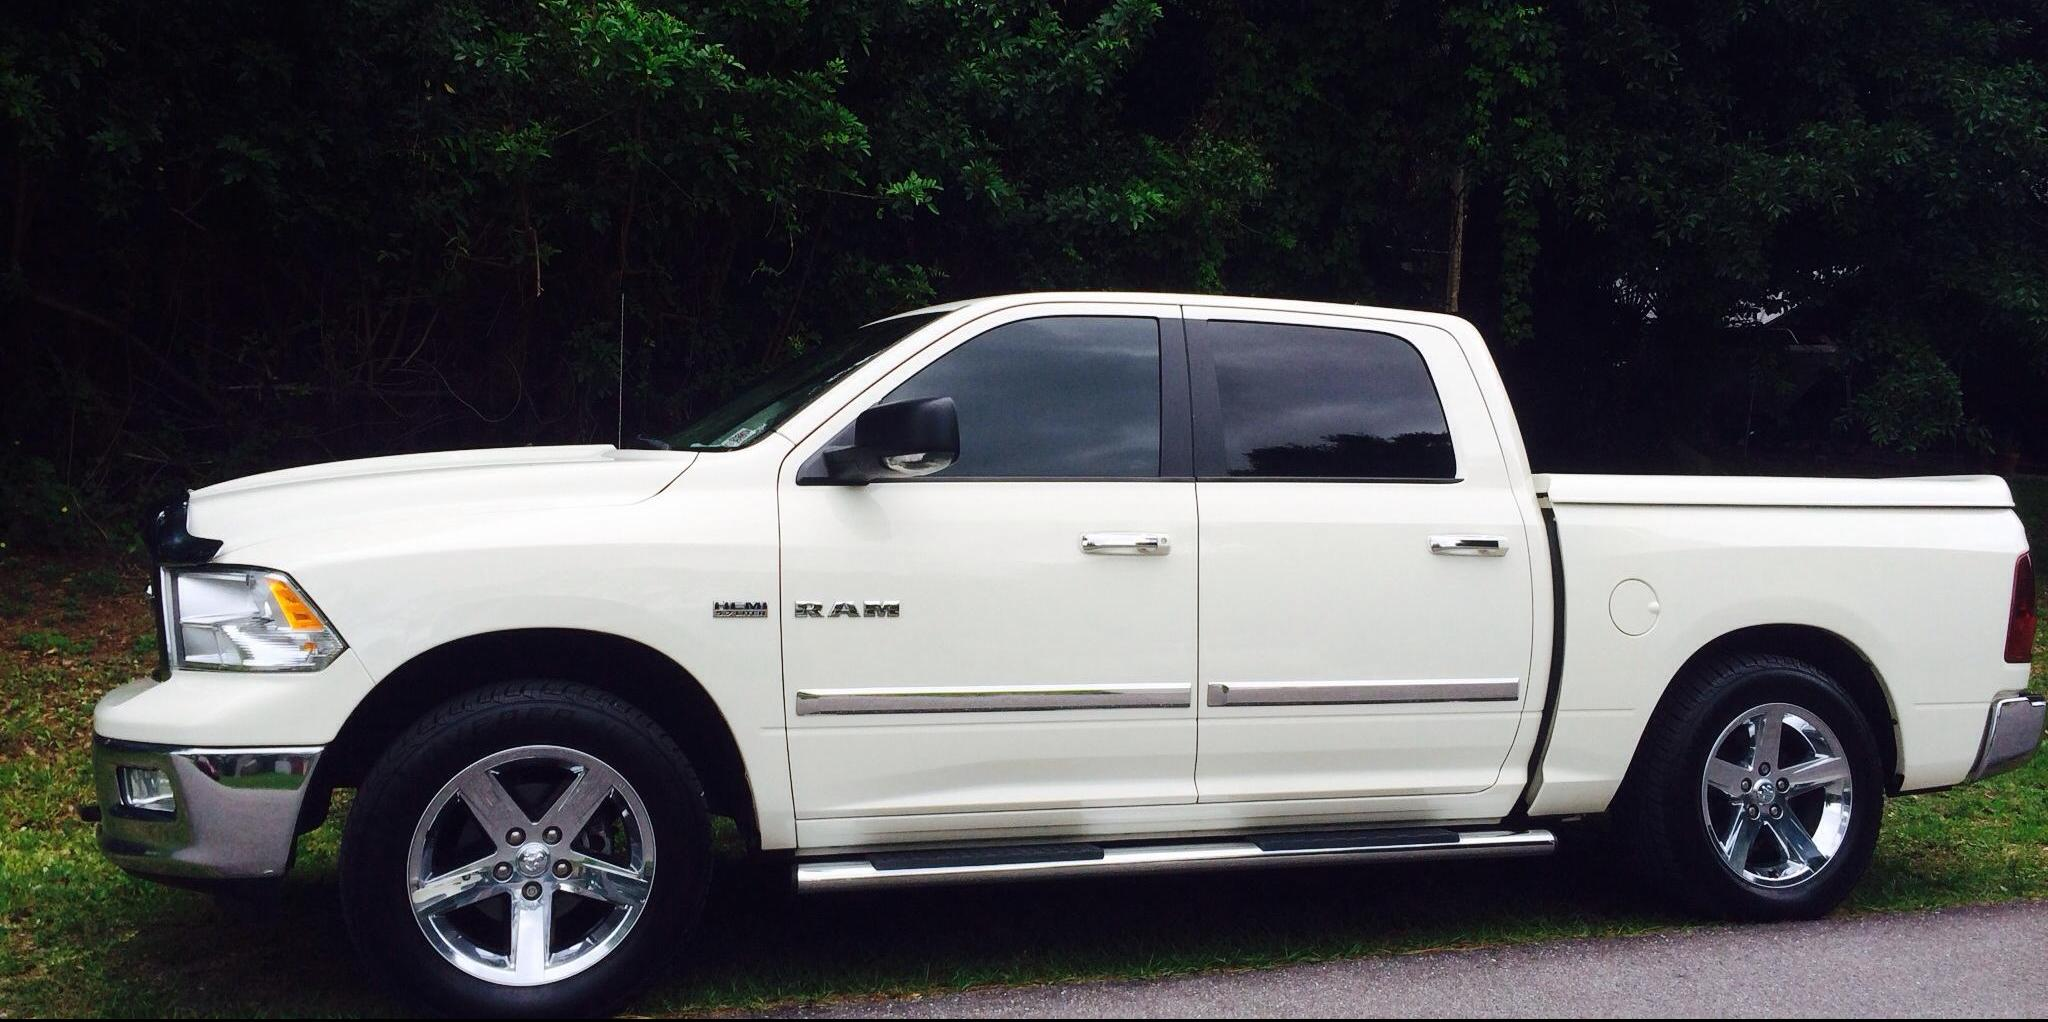 Bowmanch 2010 Dodge Ram-1500-Crew-Cab